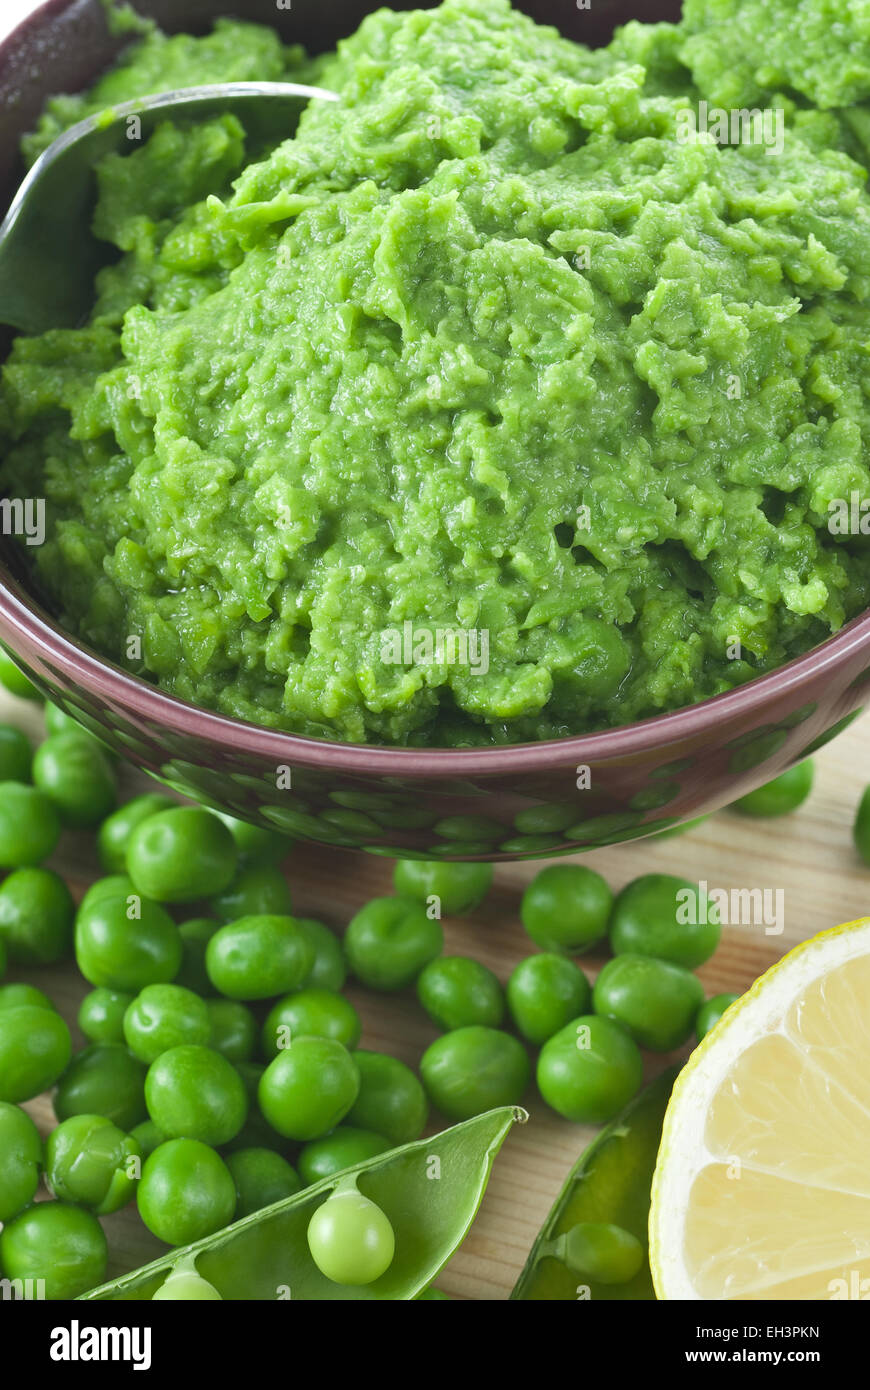 Pureed green peas in a bowl. - Stock Image